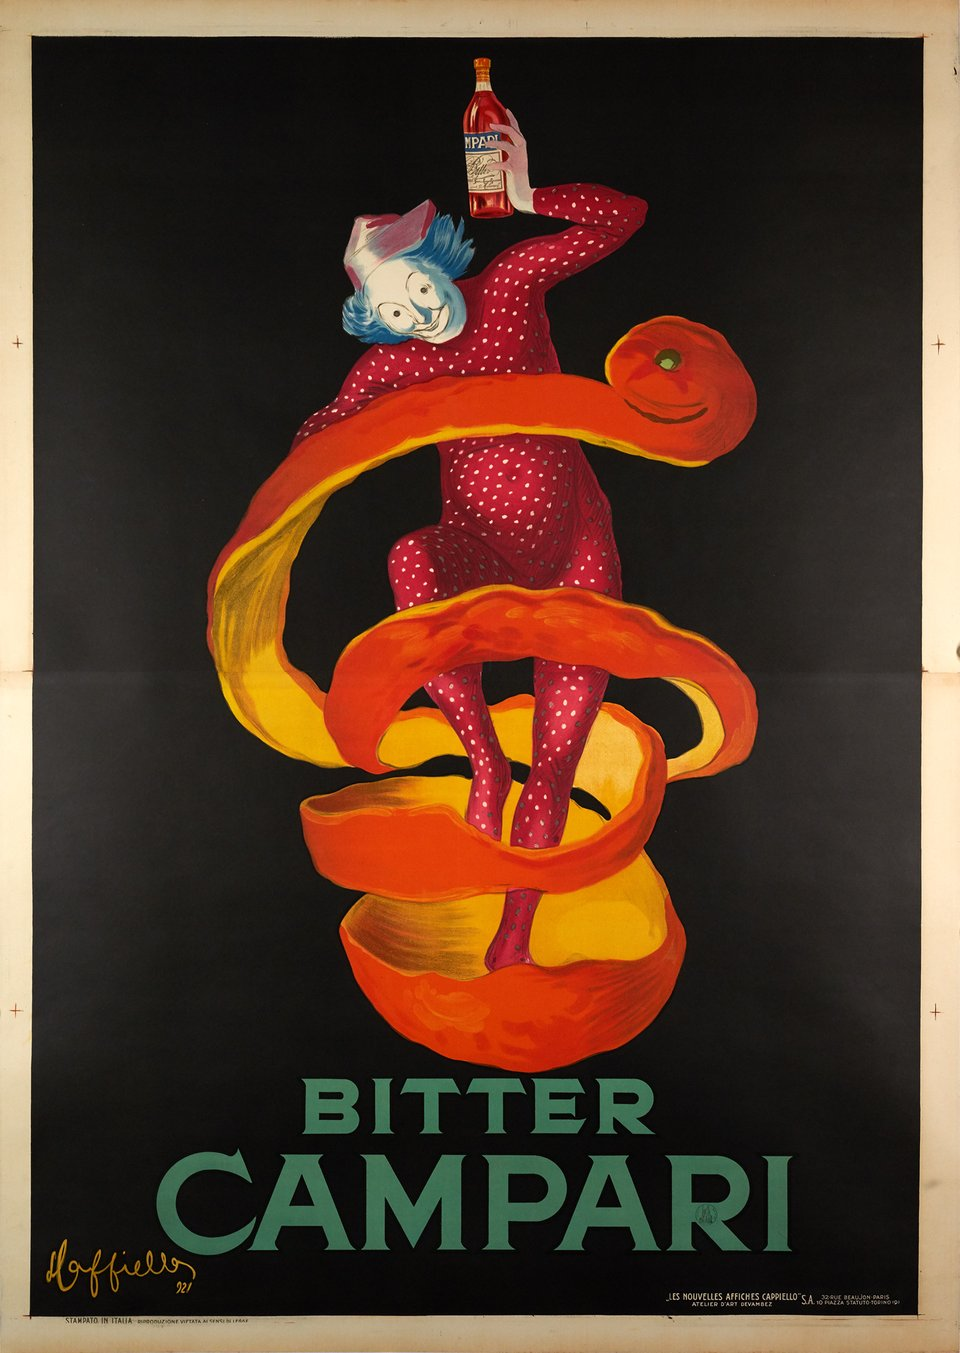 Campari, Bitter Campari, the large Orange Peel (Jester) – Vintage poster – Leonetto CAPPIELLO – 1921